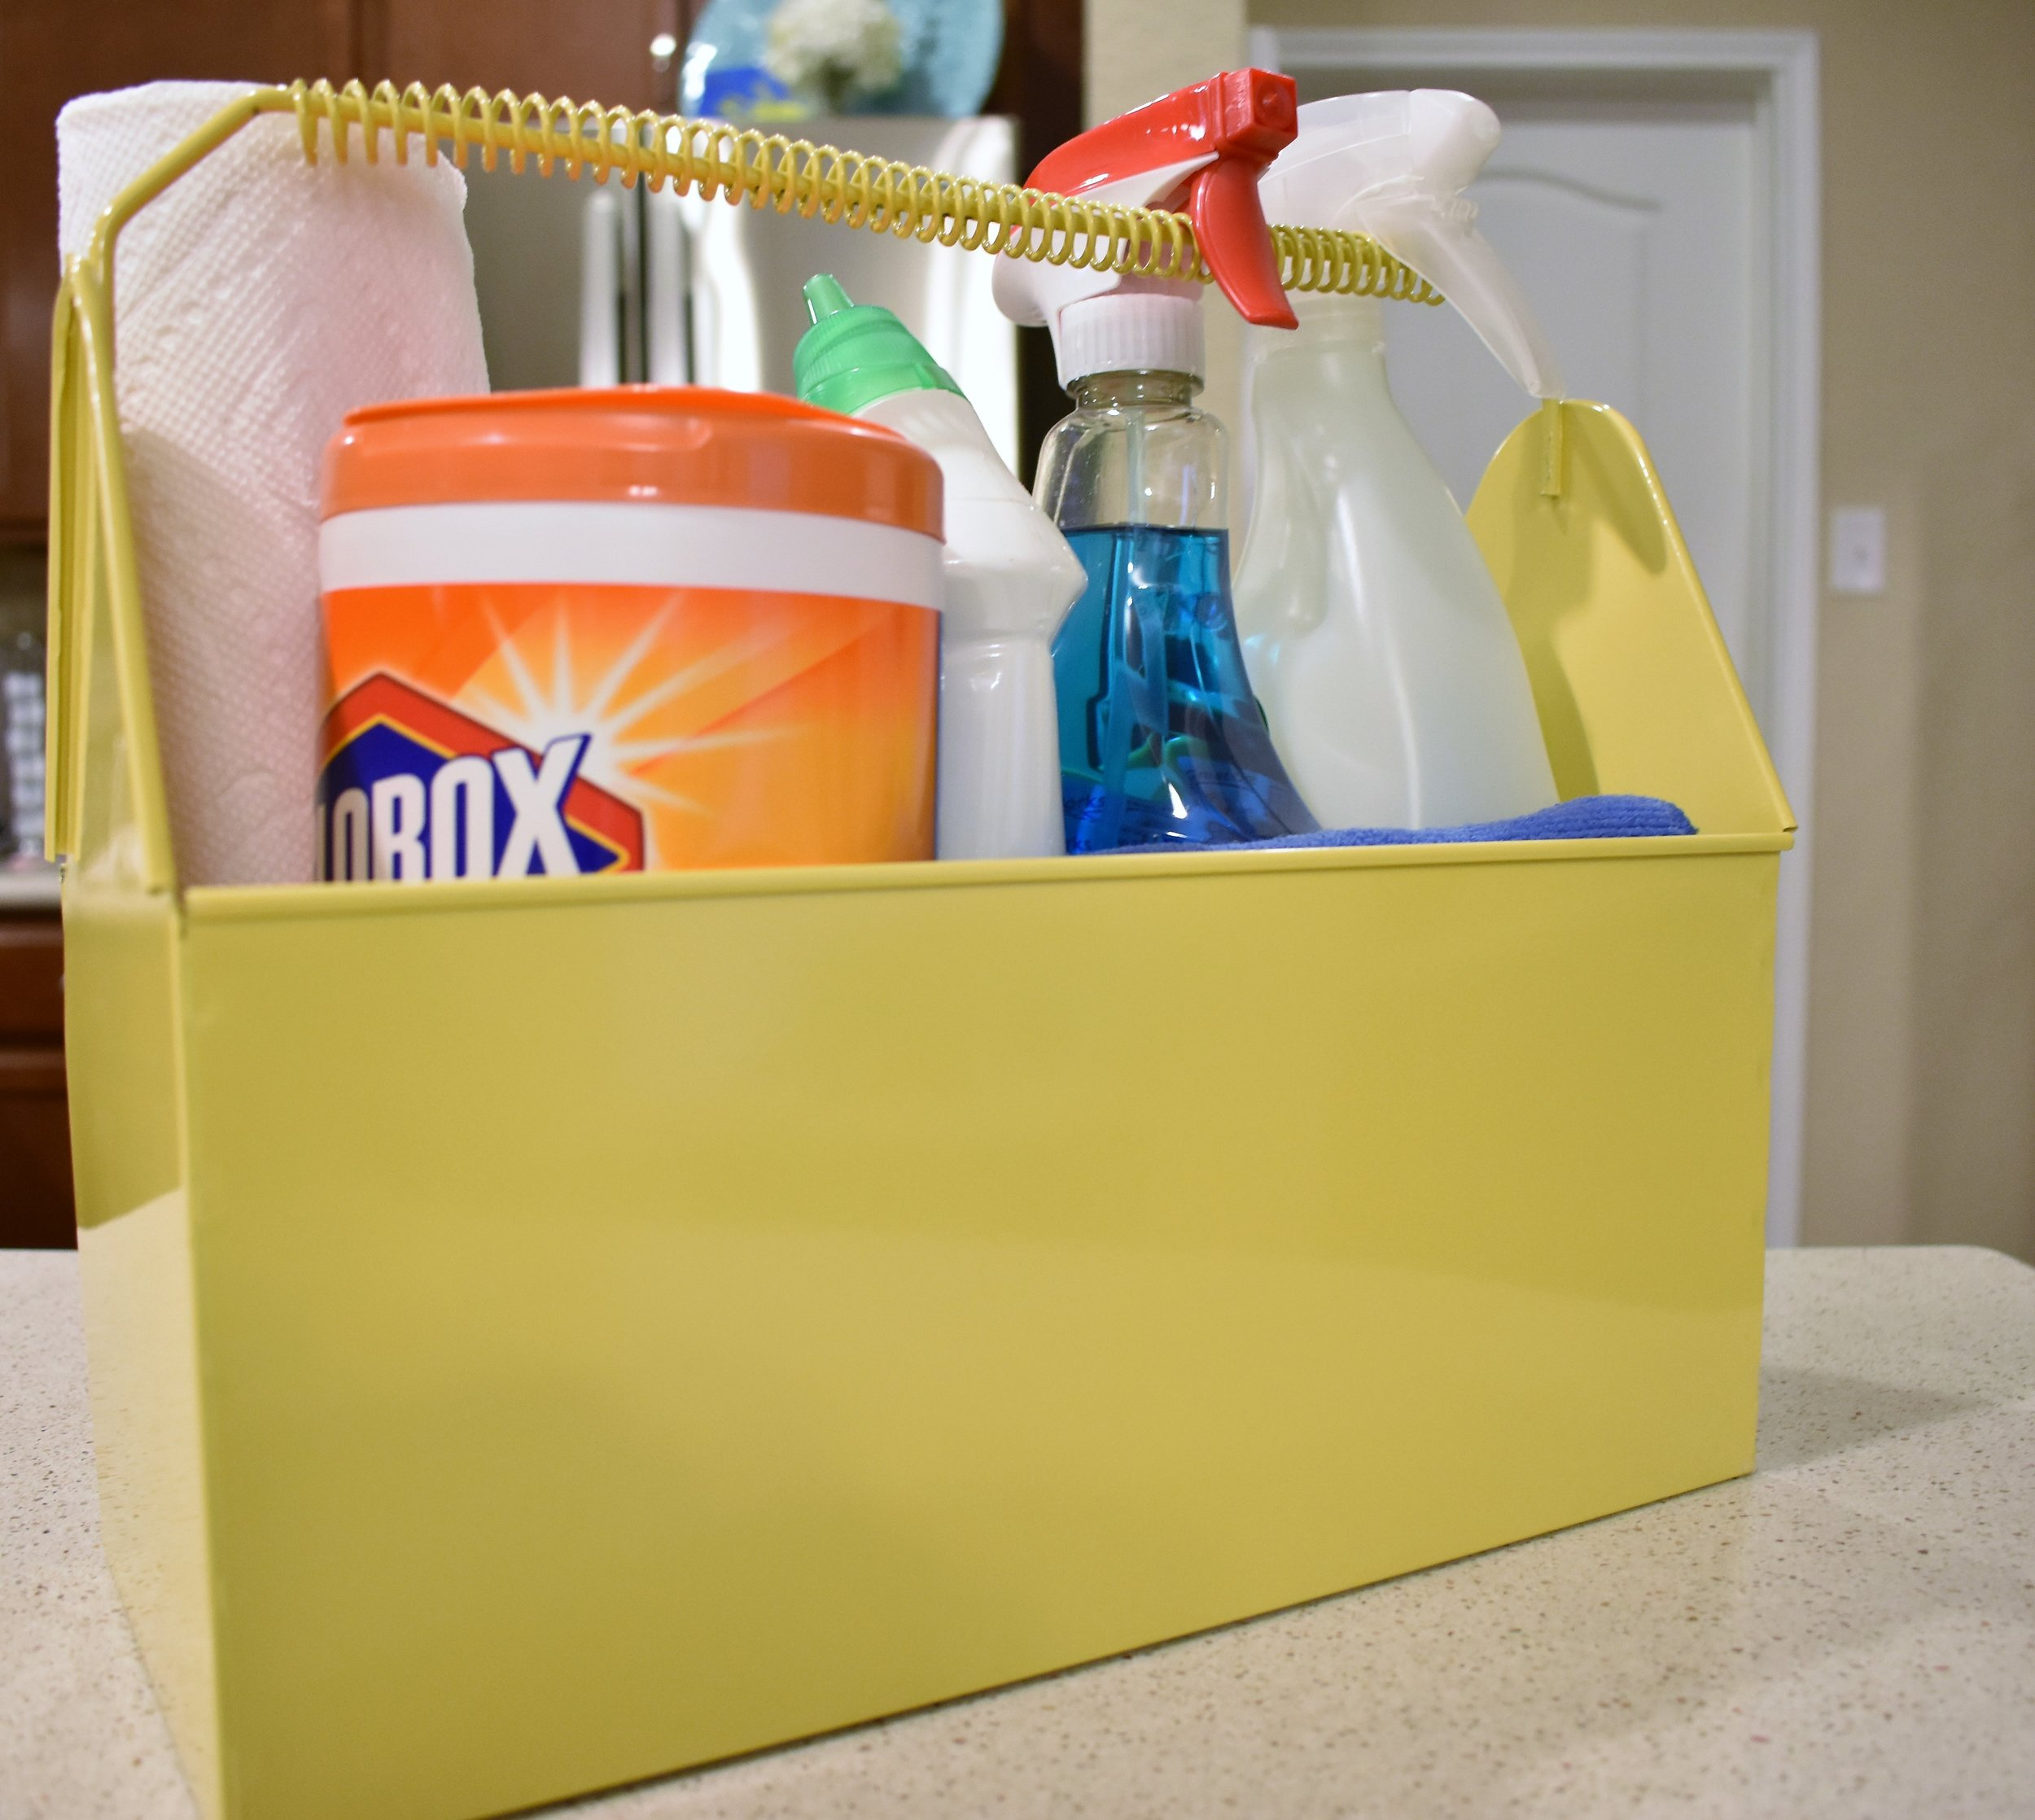 cleaning caddy caddie - household cleaners kitchen laundry room storage and organization